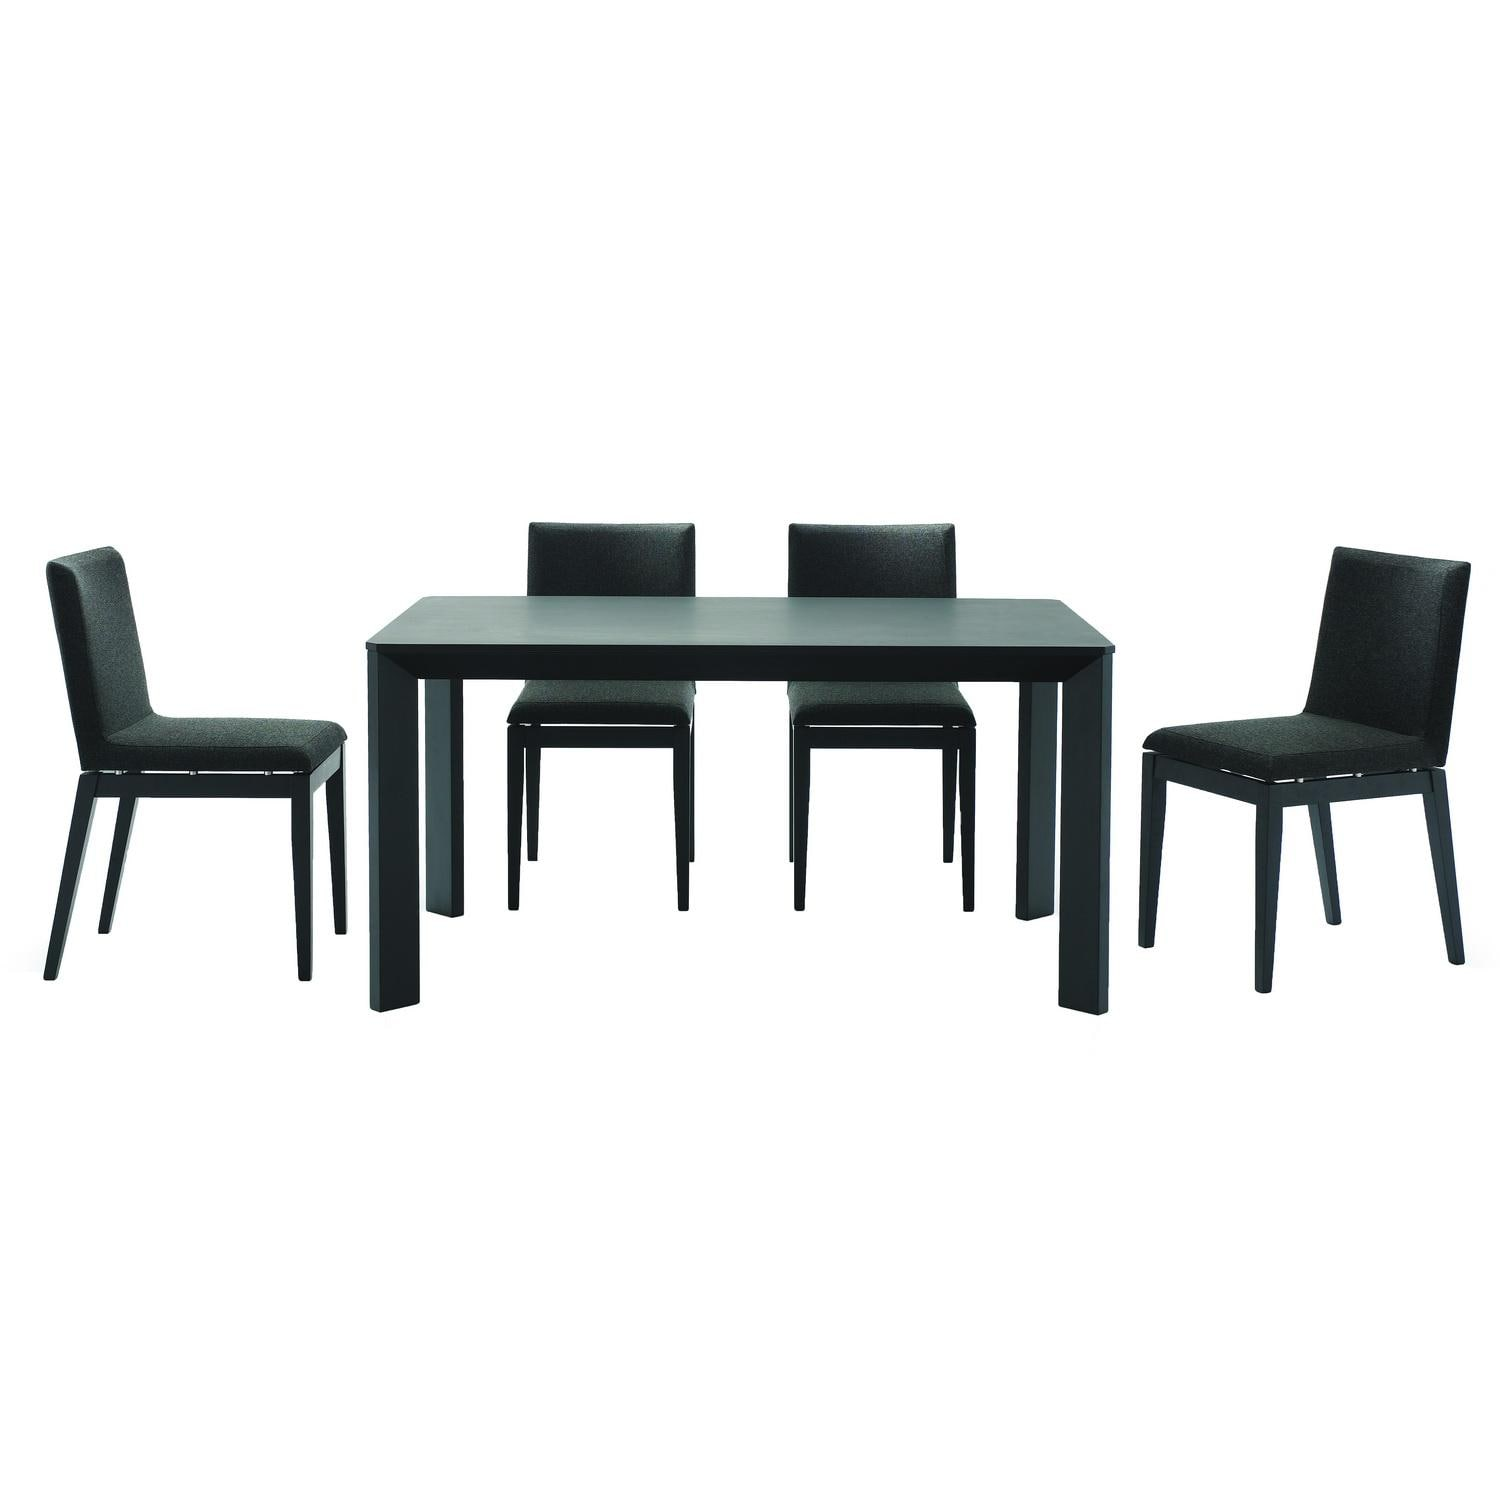 Moira Black 5-piece Modern Dining Set